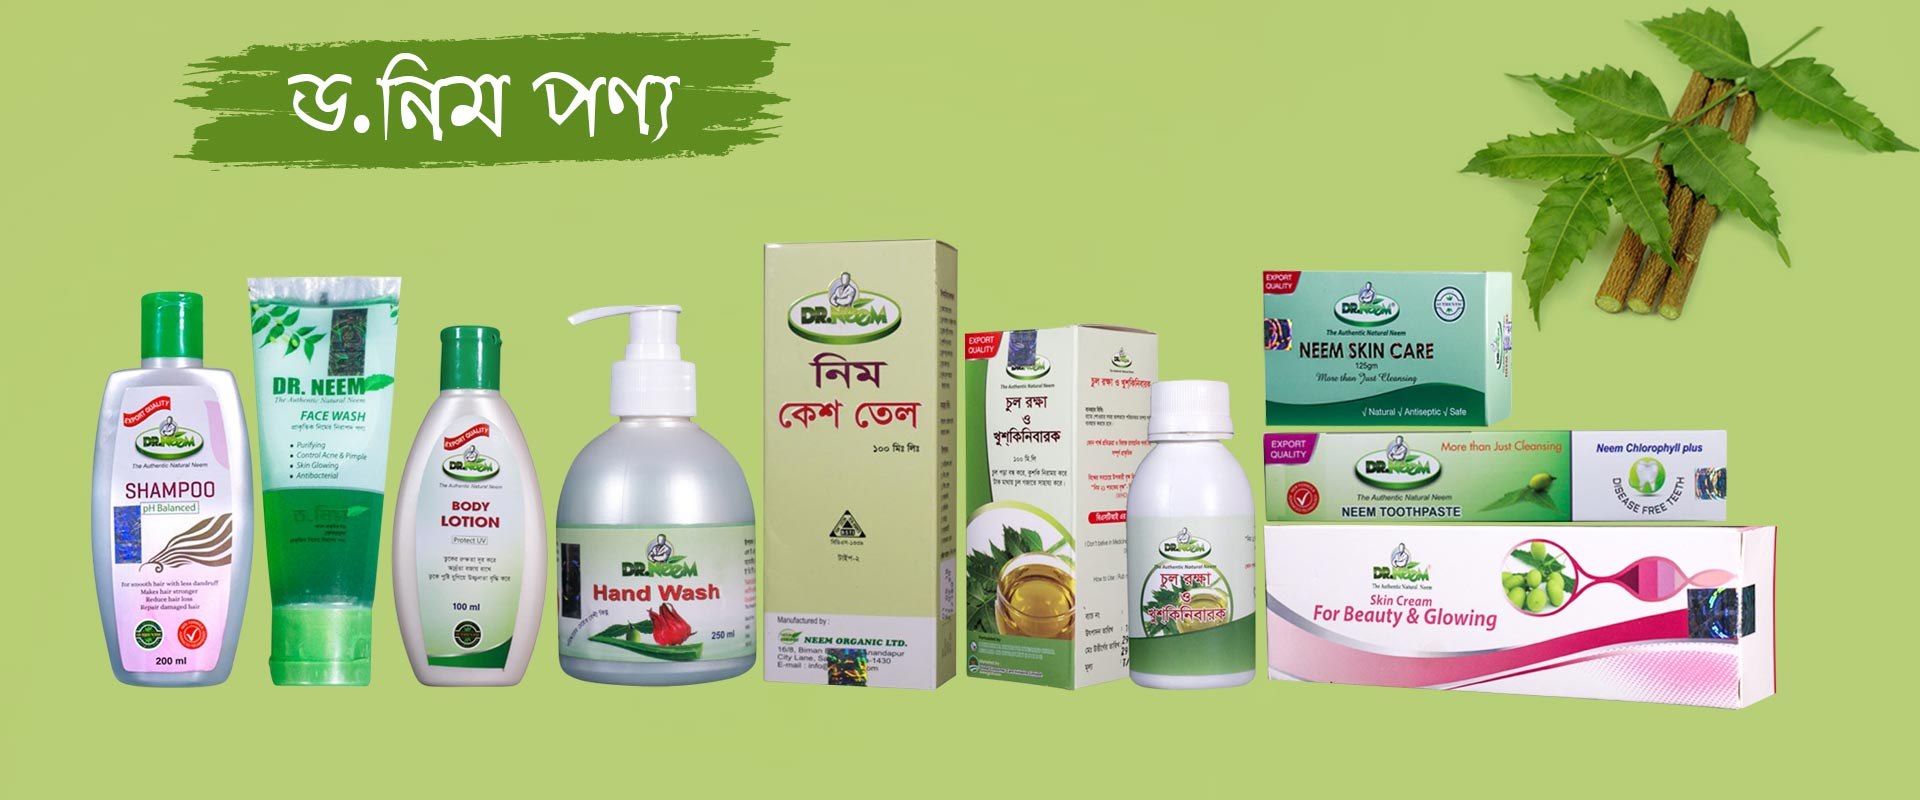 Dr. Neem Products